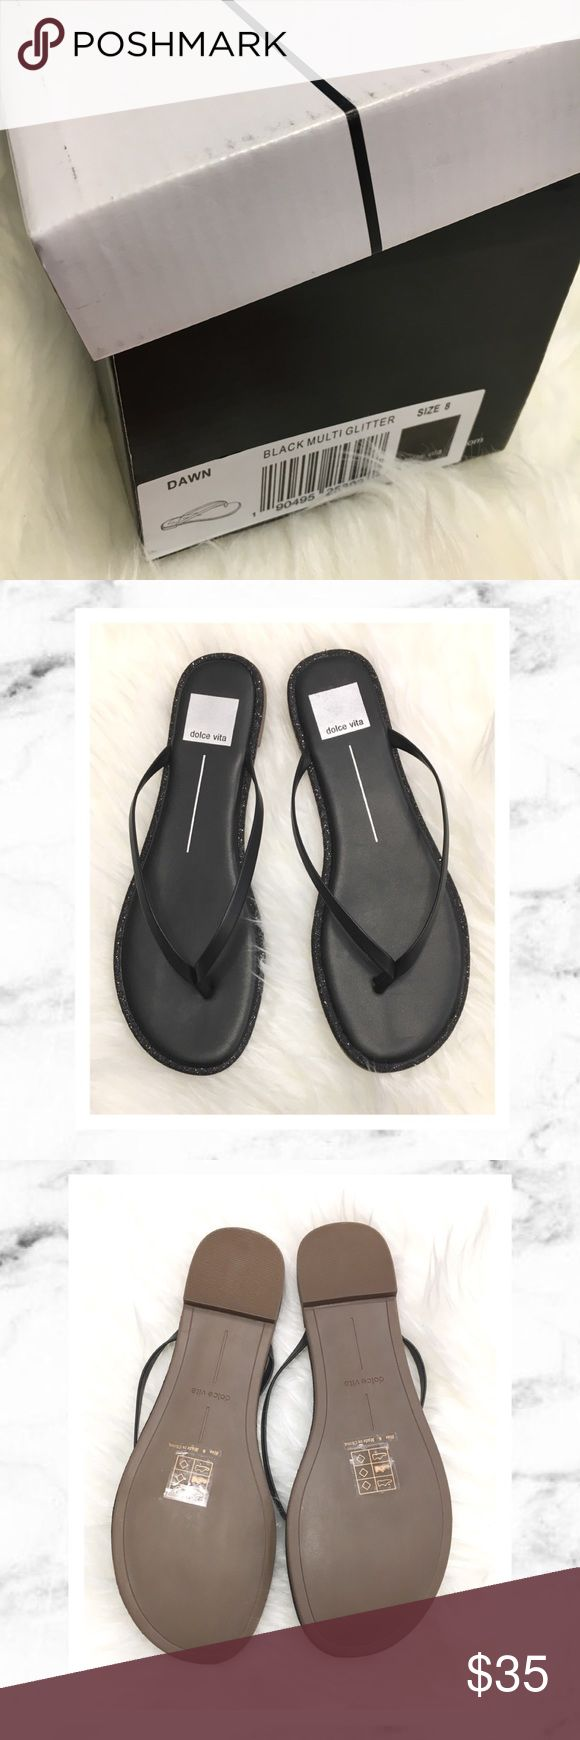 Dolce Vita Black Sparkle Flip Flops Dolce Vita Black glitter Flip Flops in size 8. New with box! I never got around to wearing these so they are up for sale now. They would look great with a little dress when you don't feel like hobbling around on skyscraper heels! 💕 Dolce Vita Shoes Sandals